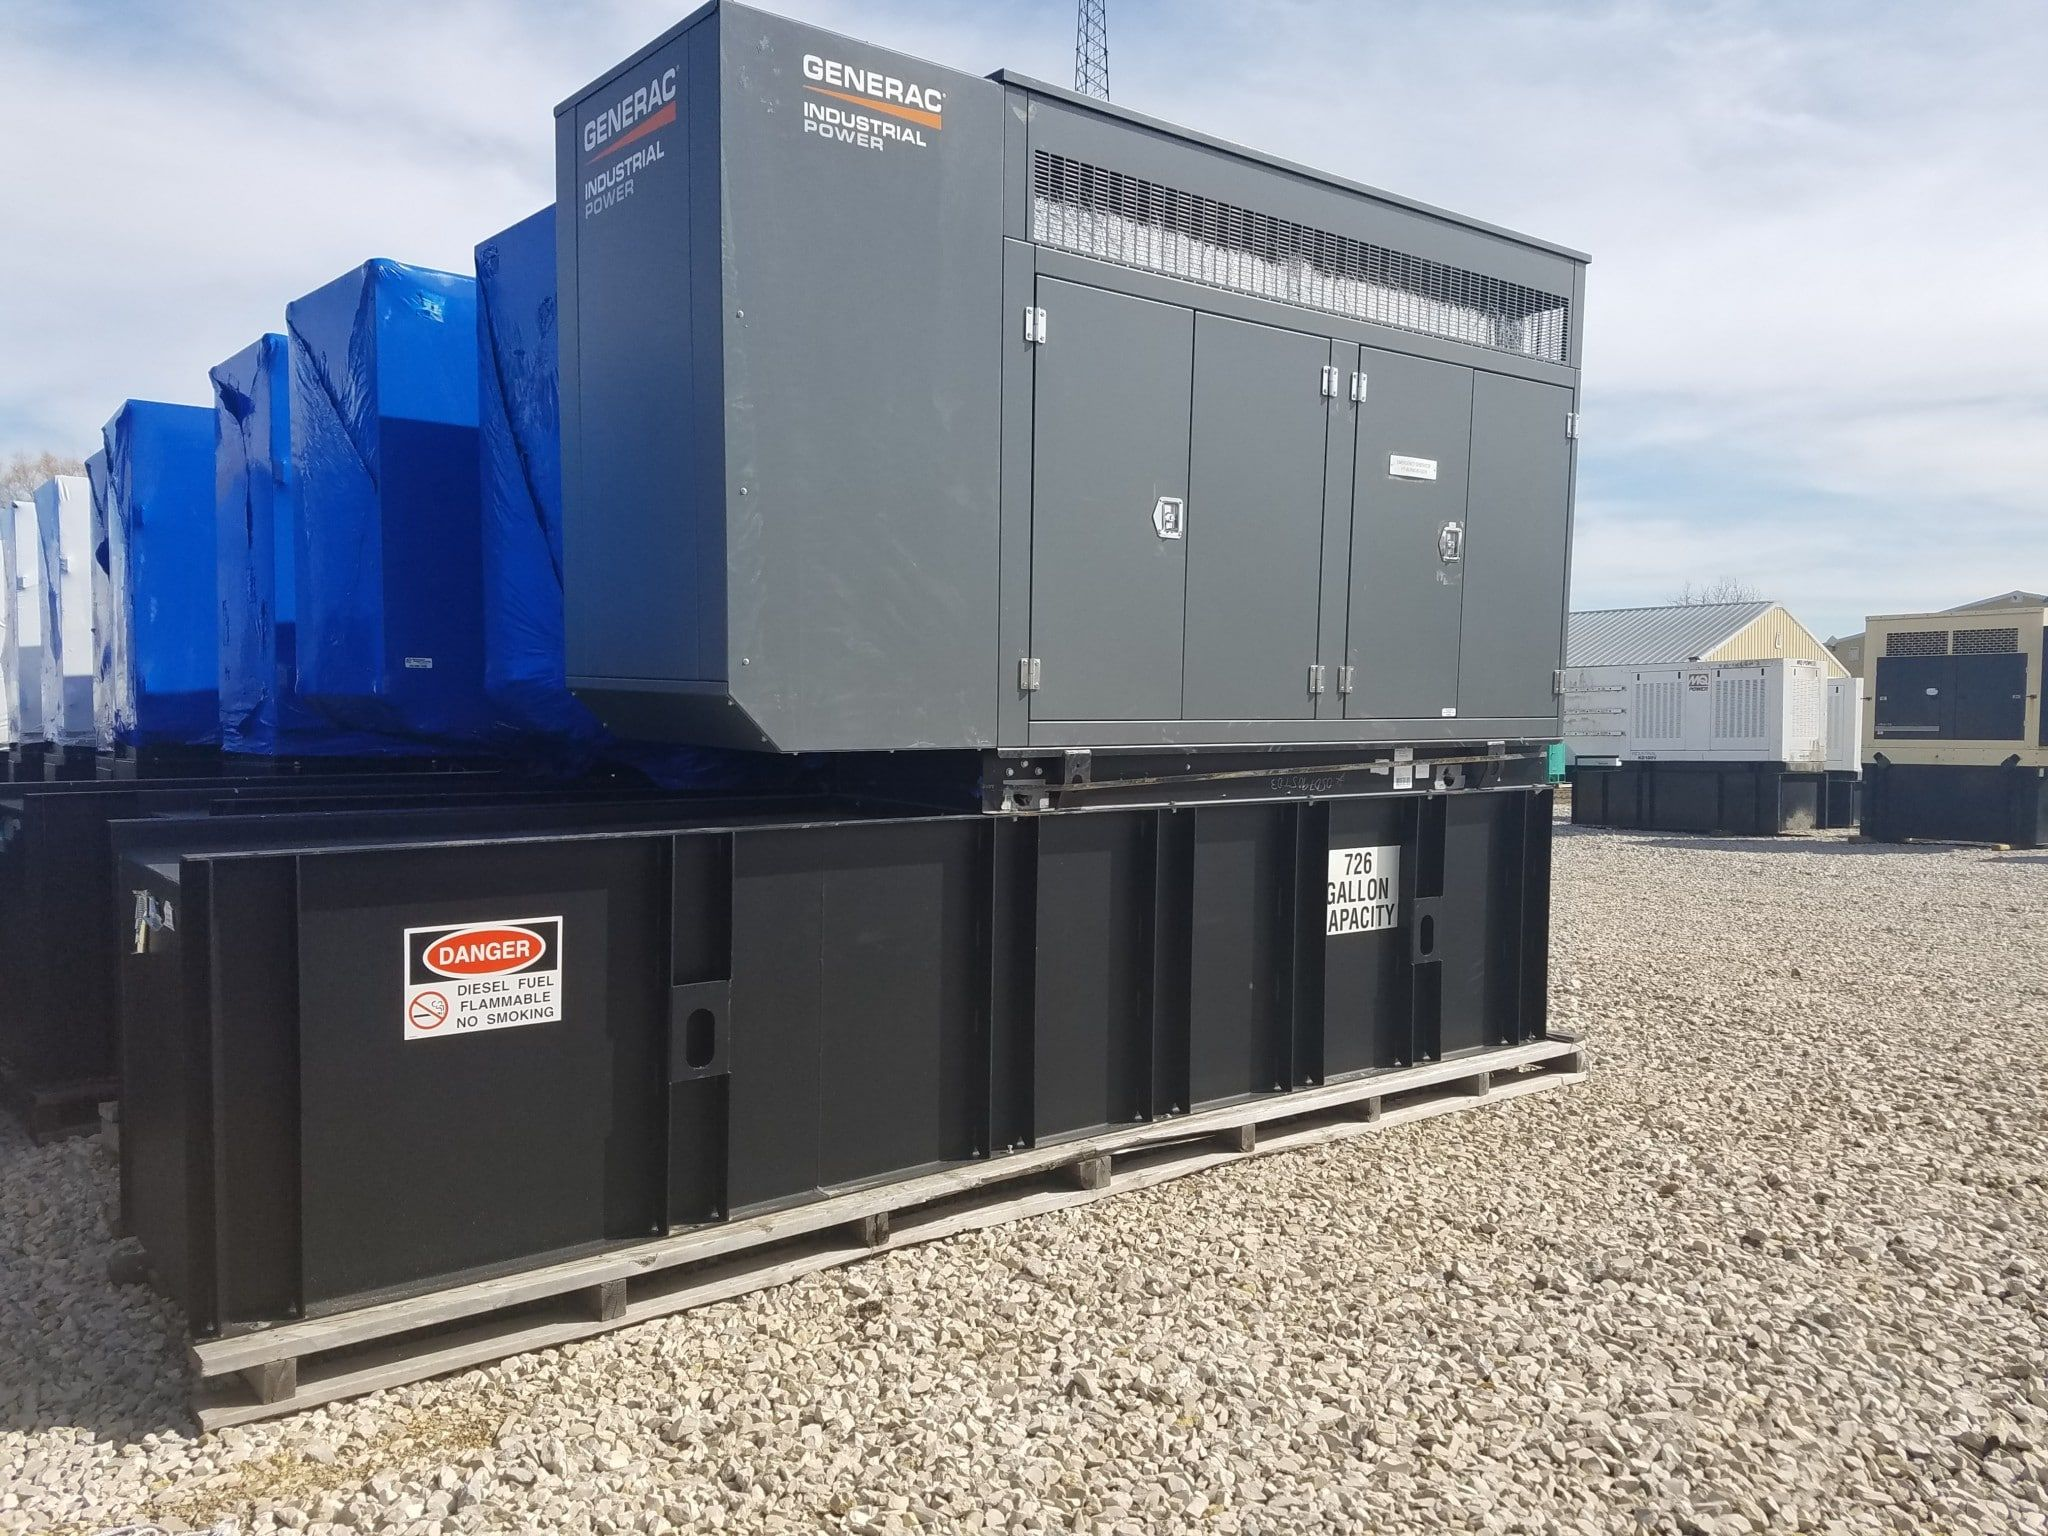 100 Kw Generac Diesel Generators 9 Units Available Going Fast Unit 54131007 Manufacturer Generac Fuel Type Di Diesel Generators Generation The Unit